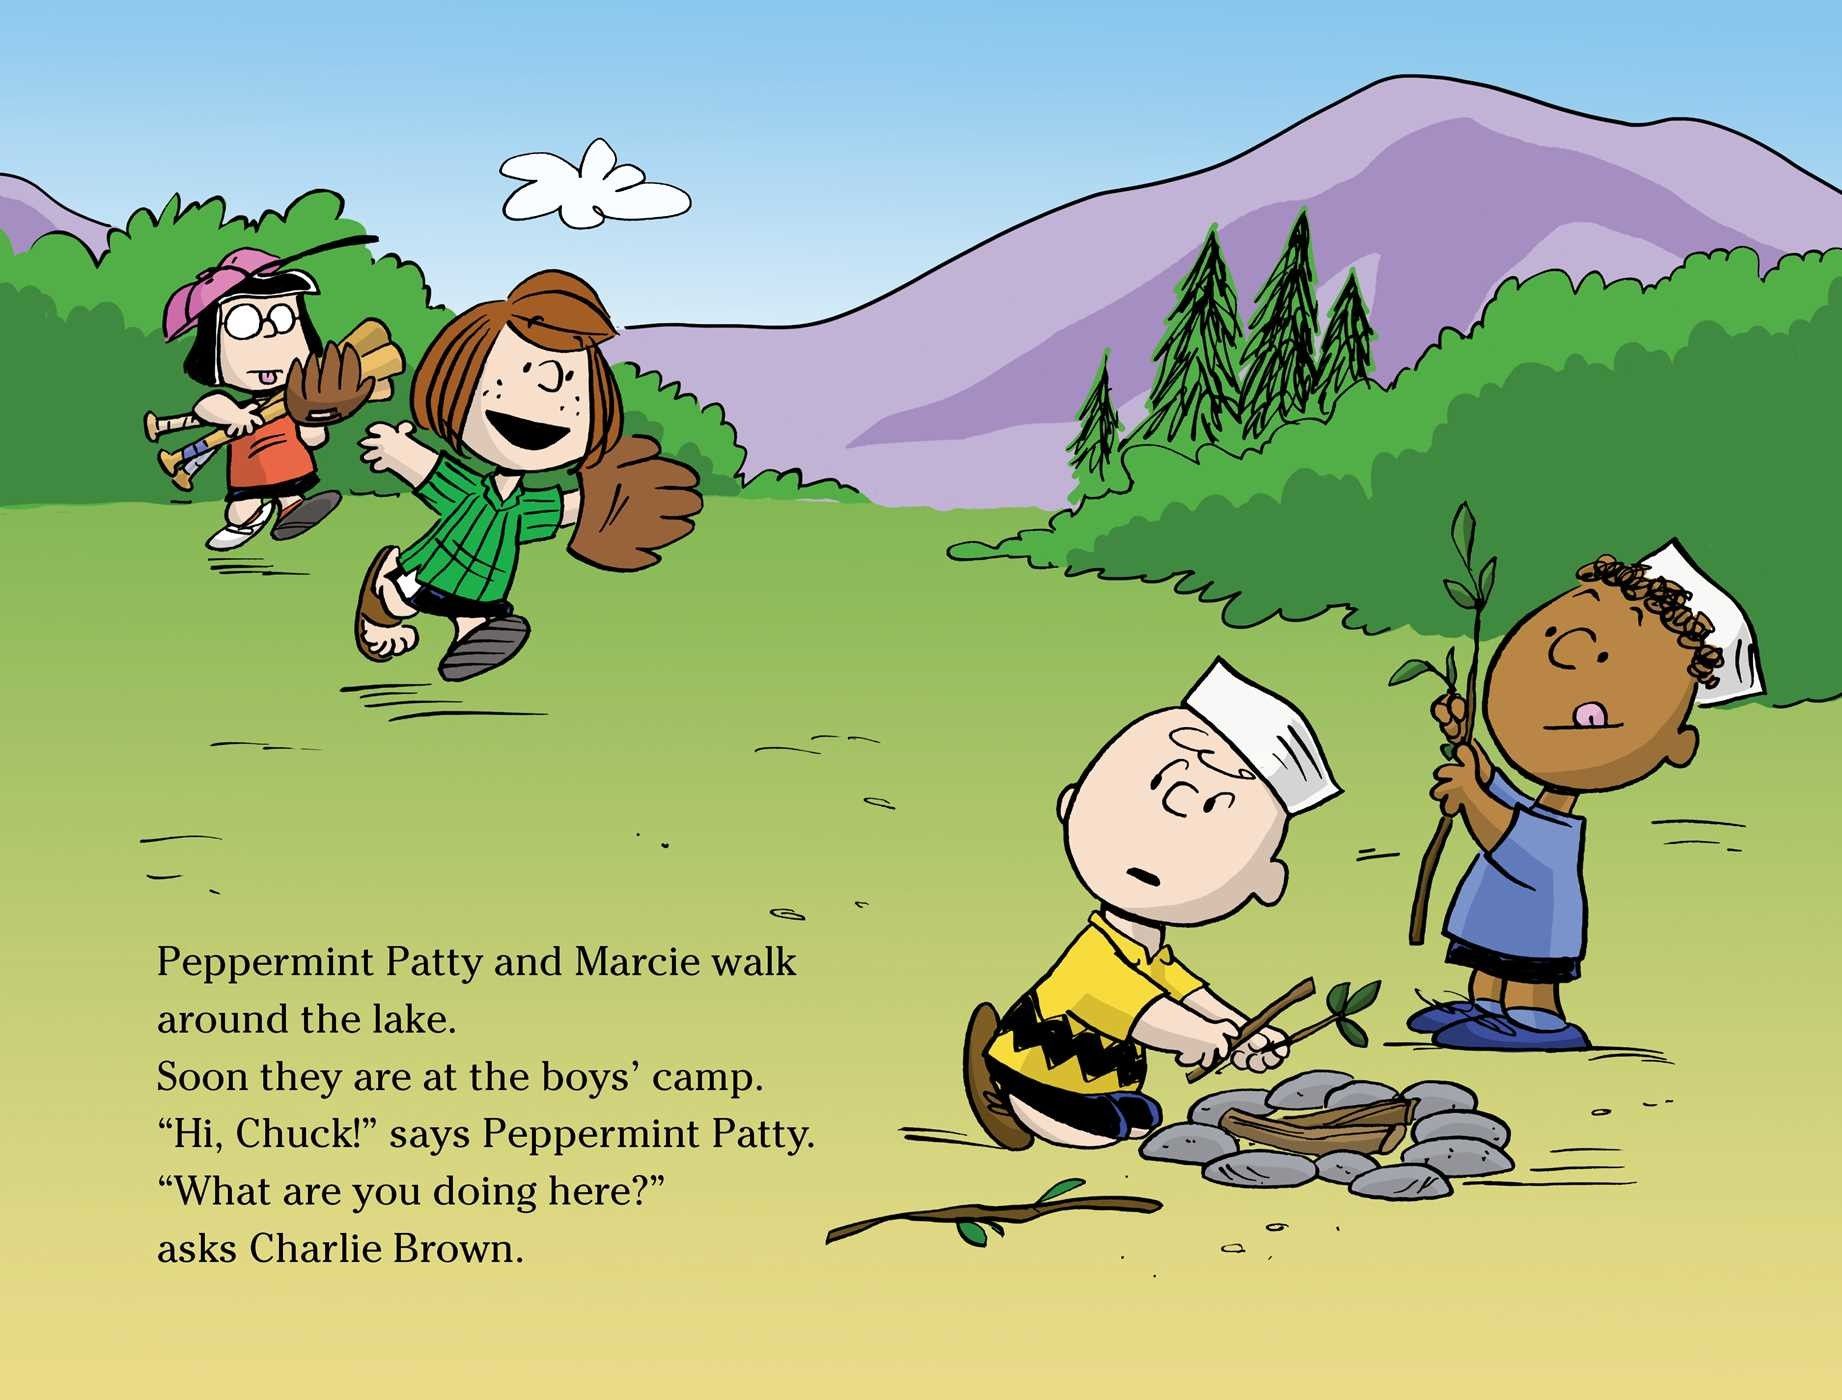 Peppermint patty goes to camp 9781481462624.in04